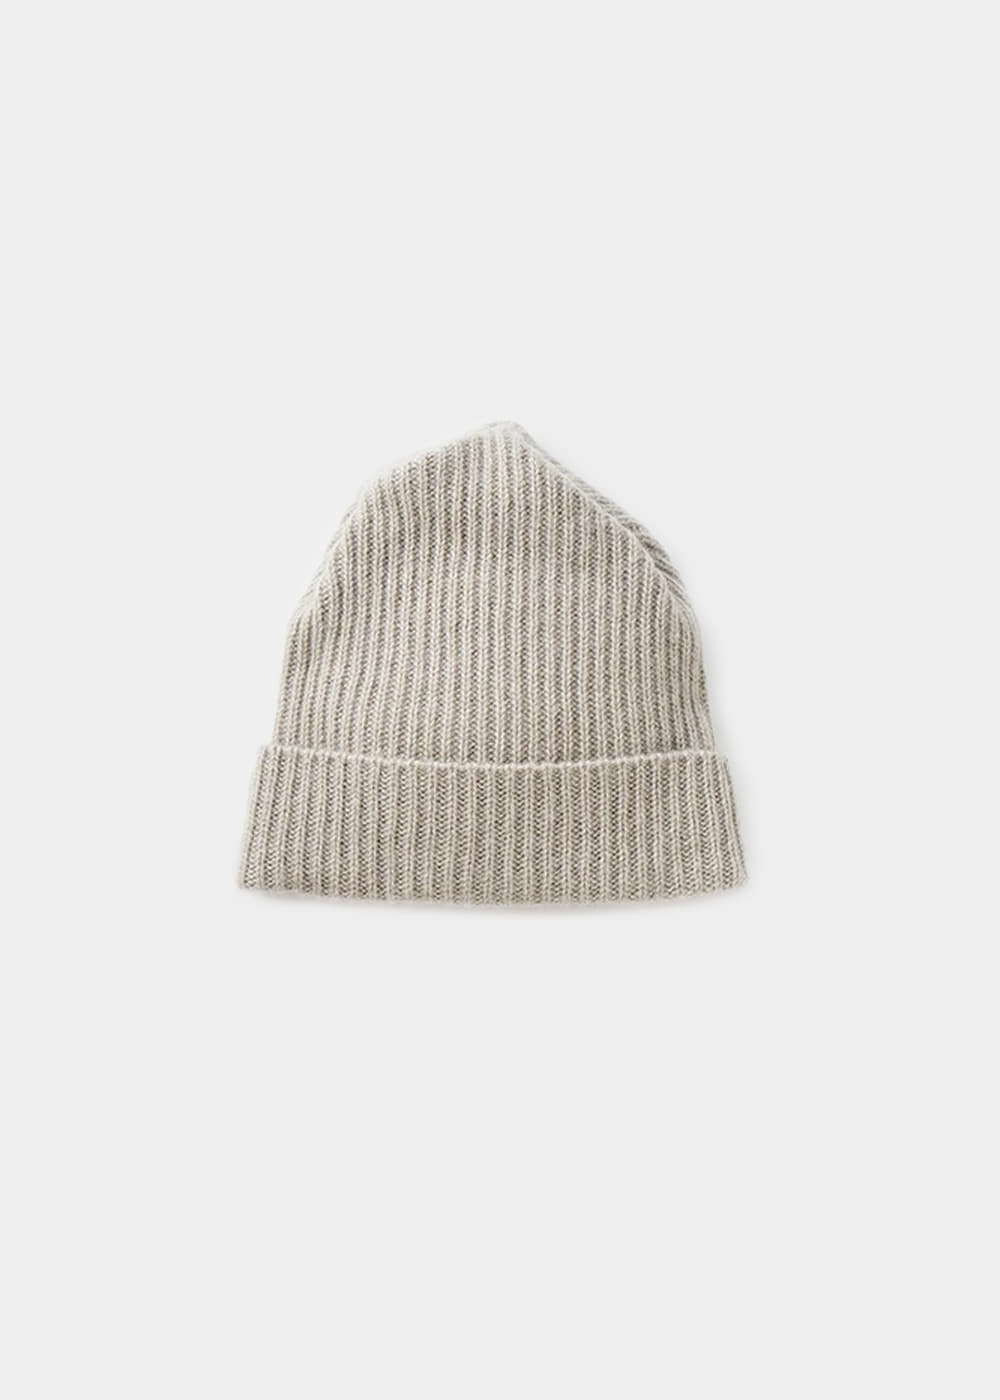 PLEATS KNIT CAP - light grey